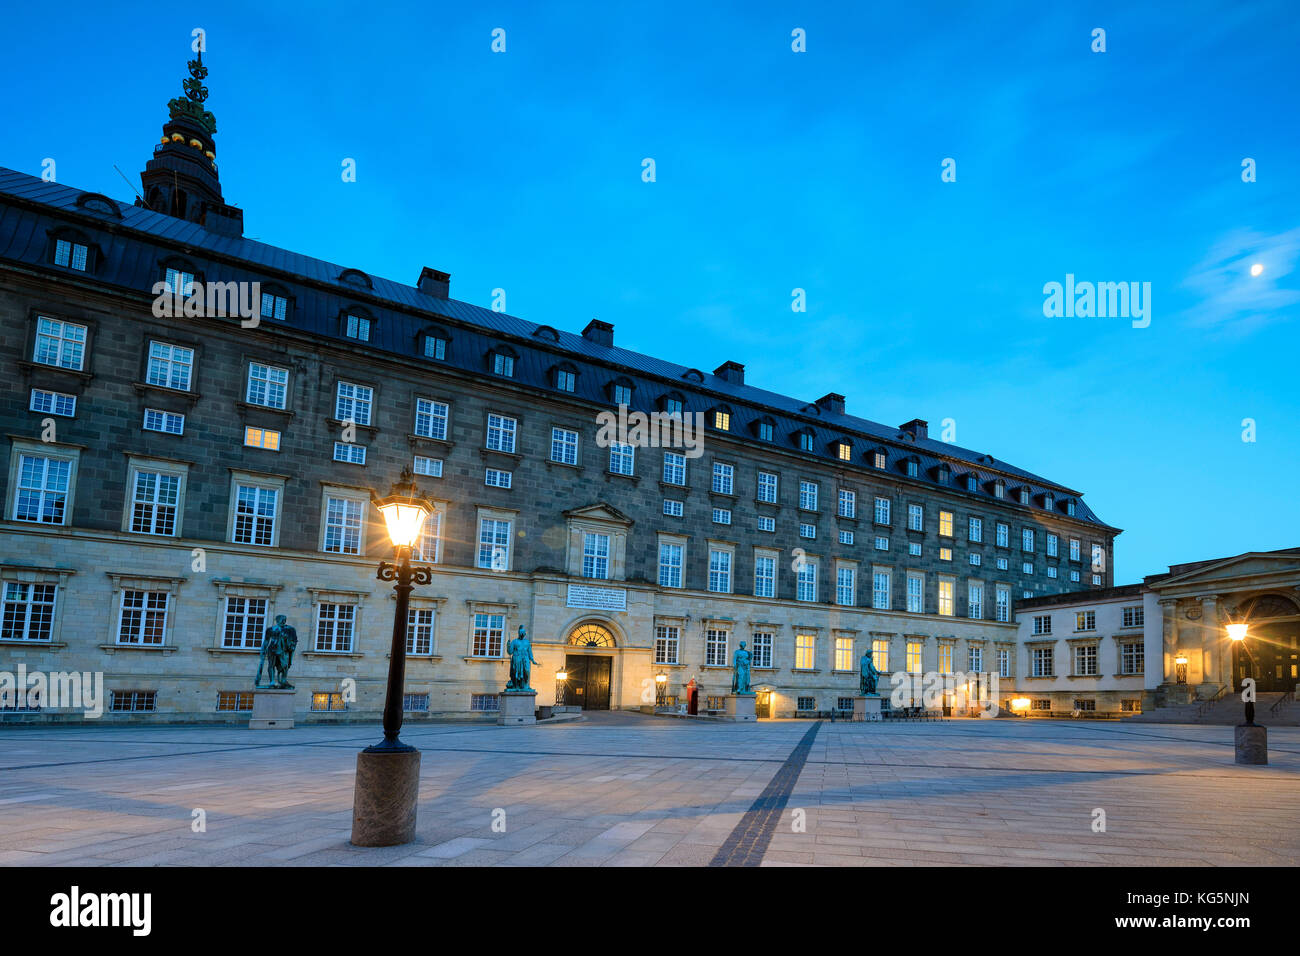 Tivoli Hotel Canal Zone Capital Region Of Denmark Stock Photos And Capital Region Of